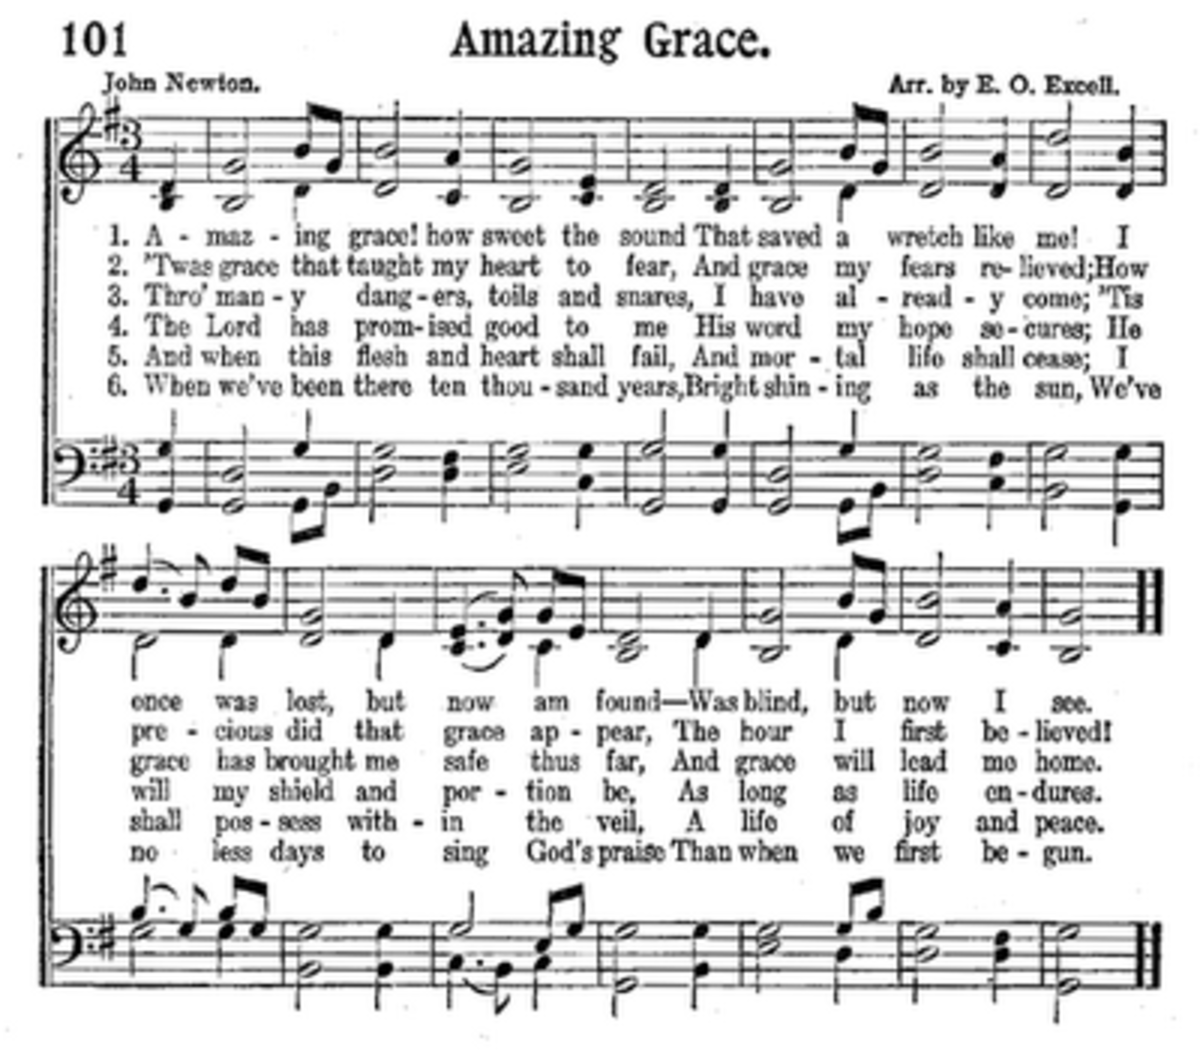 Amazing Grace in 50 Languages - a New Record on Guinness this Christmas